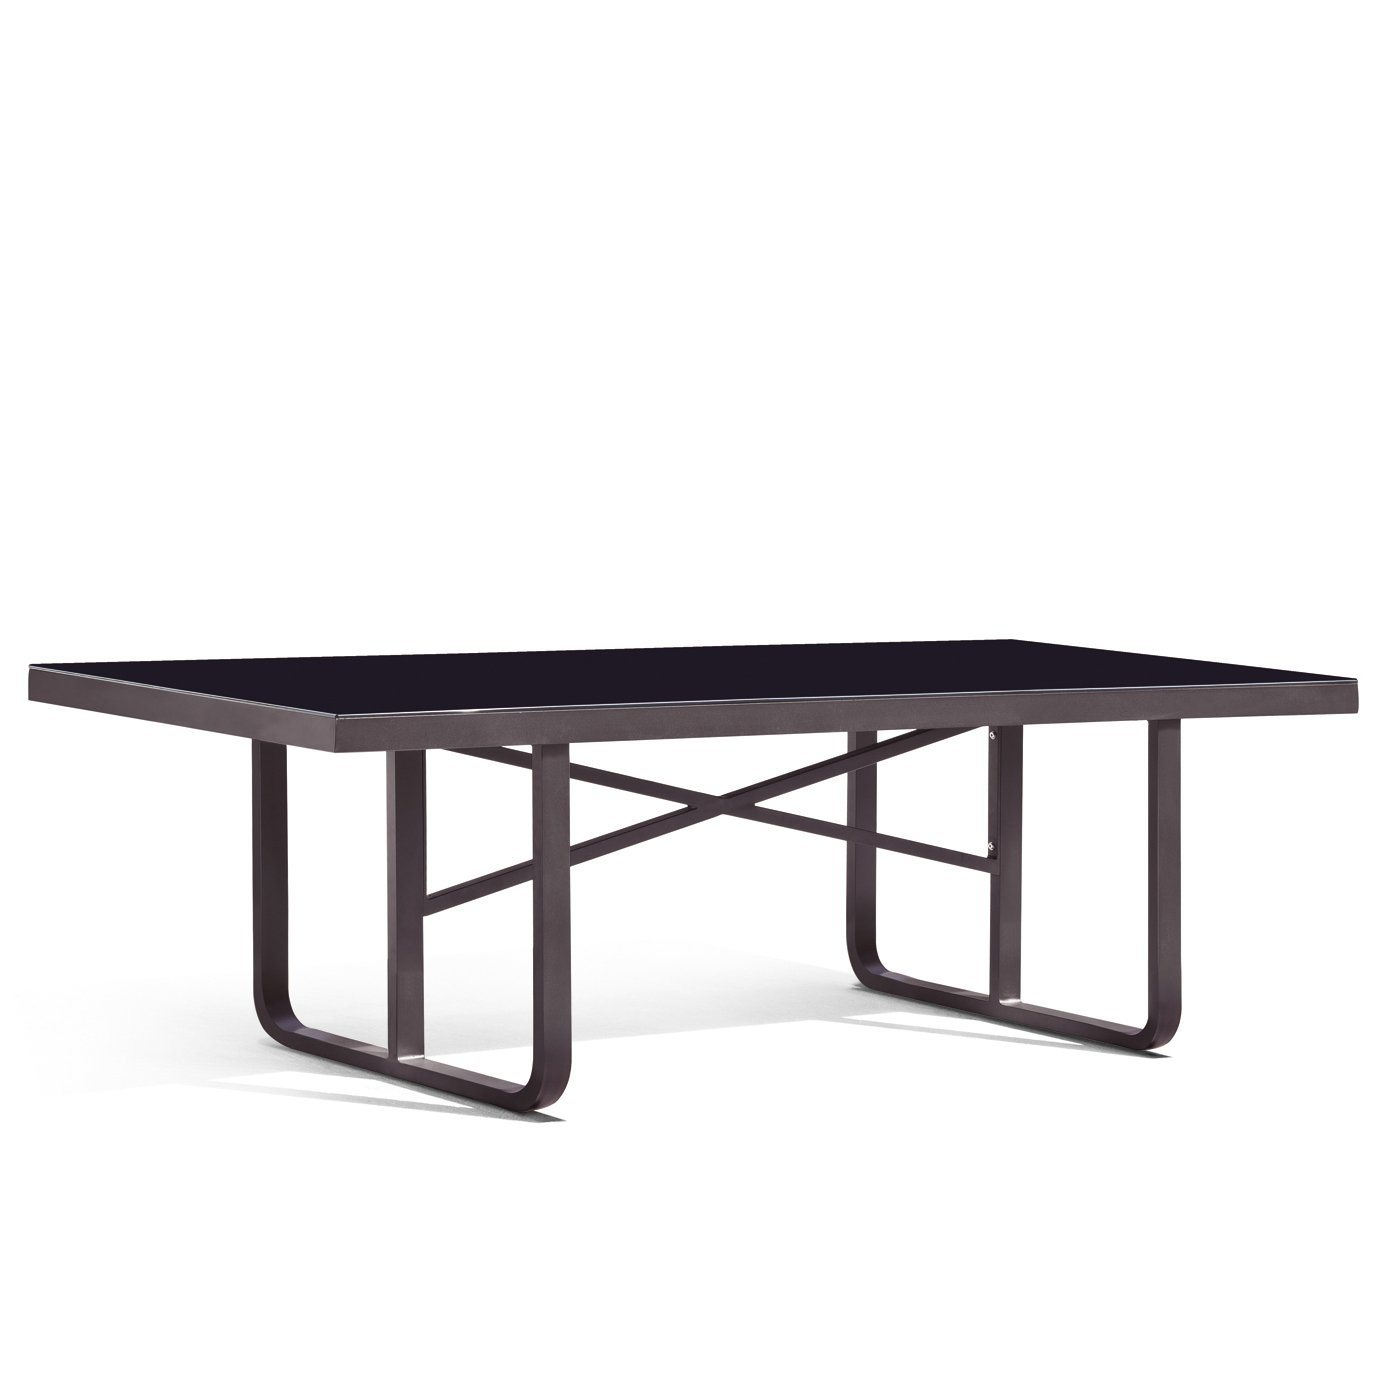 Orlando dining table c w frosted glass top